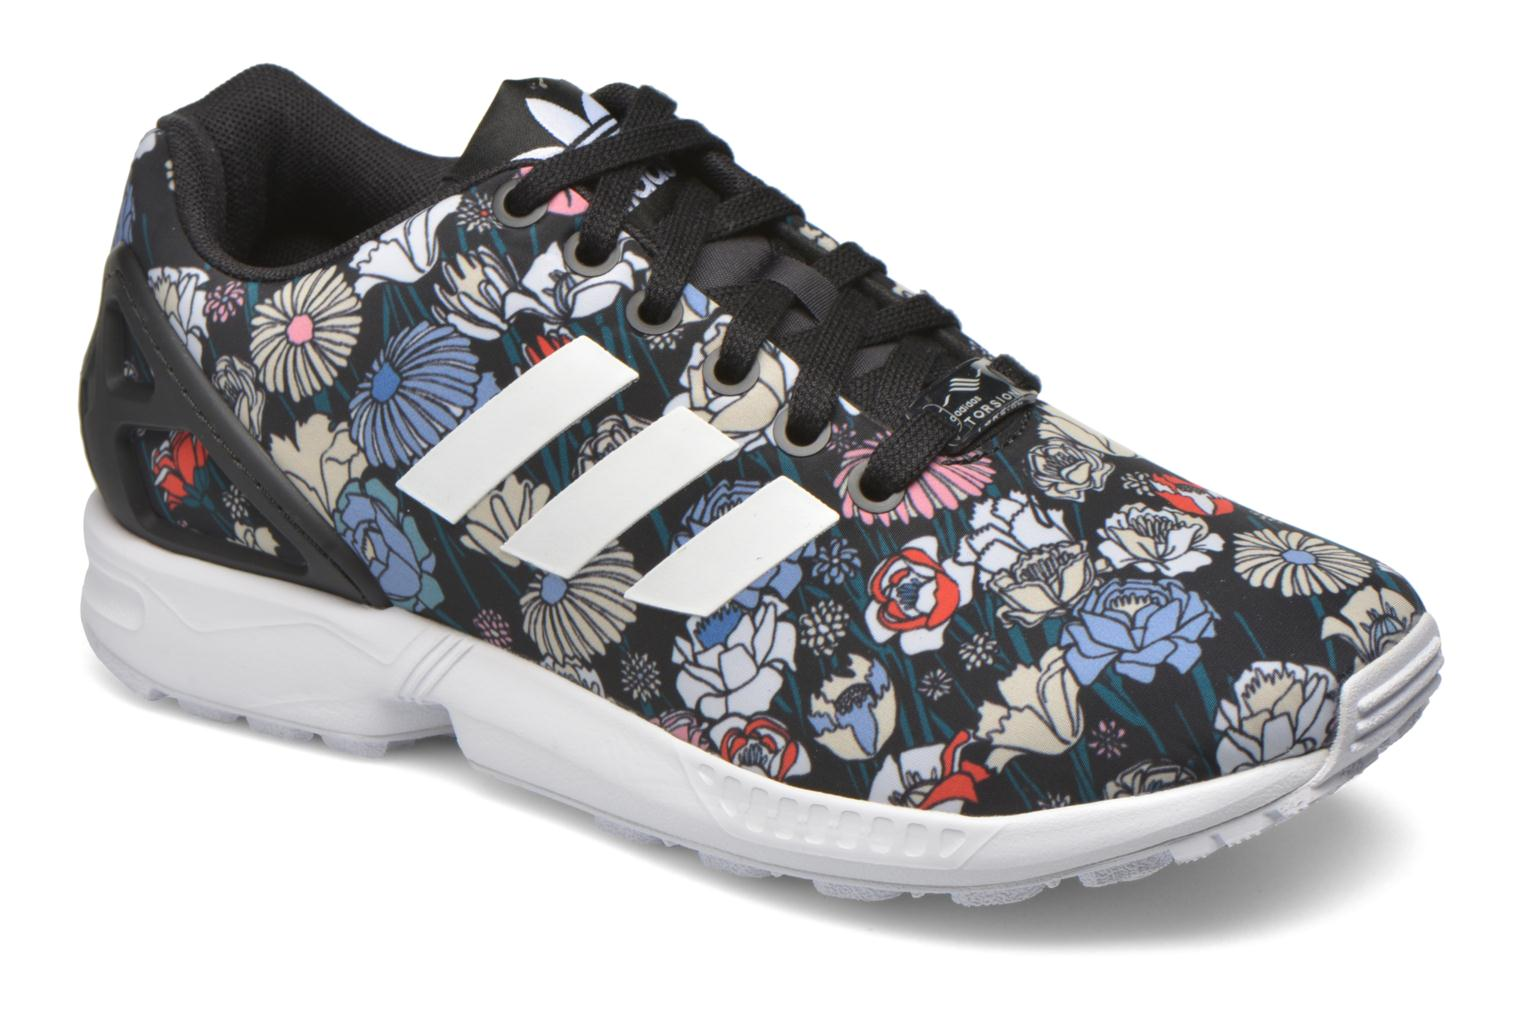 Zx Flux W Black-Flowers